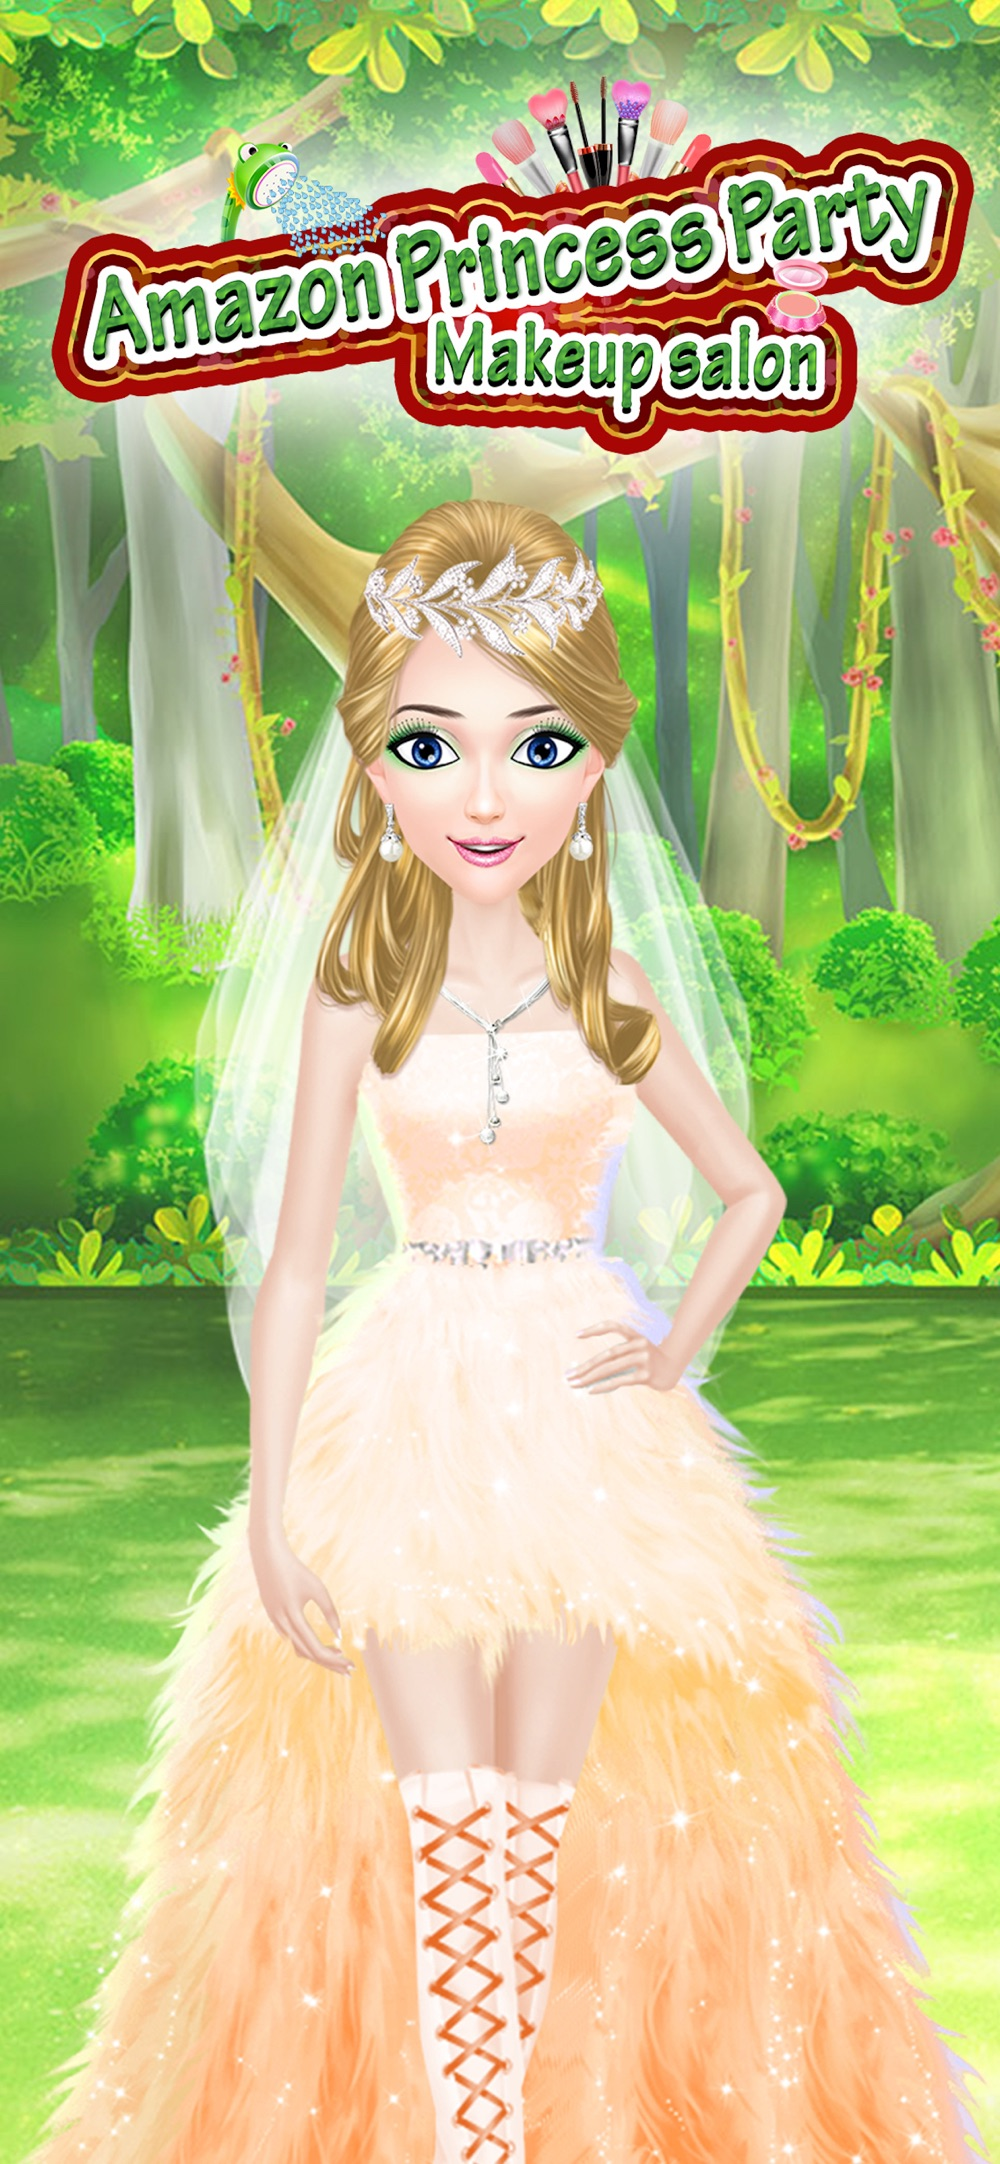 Amazon Princess Party Makeover hack tool